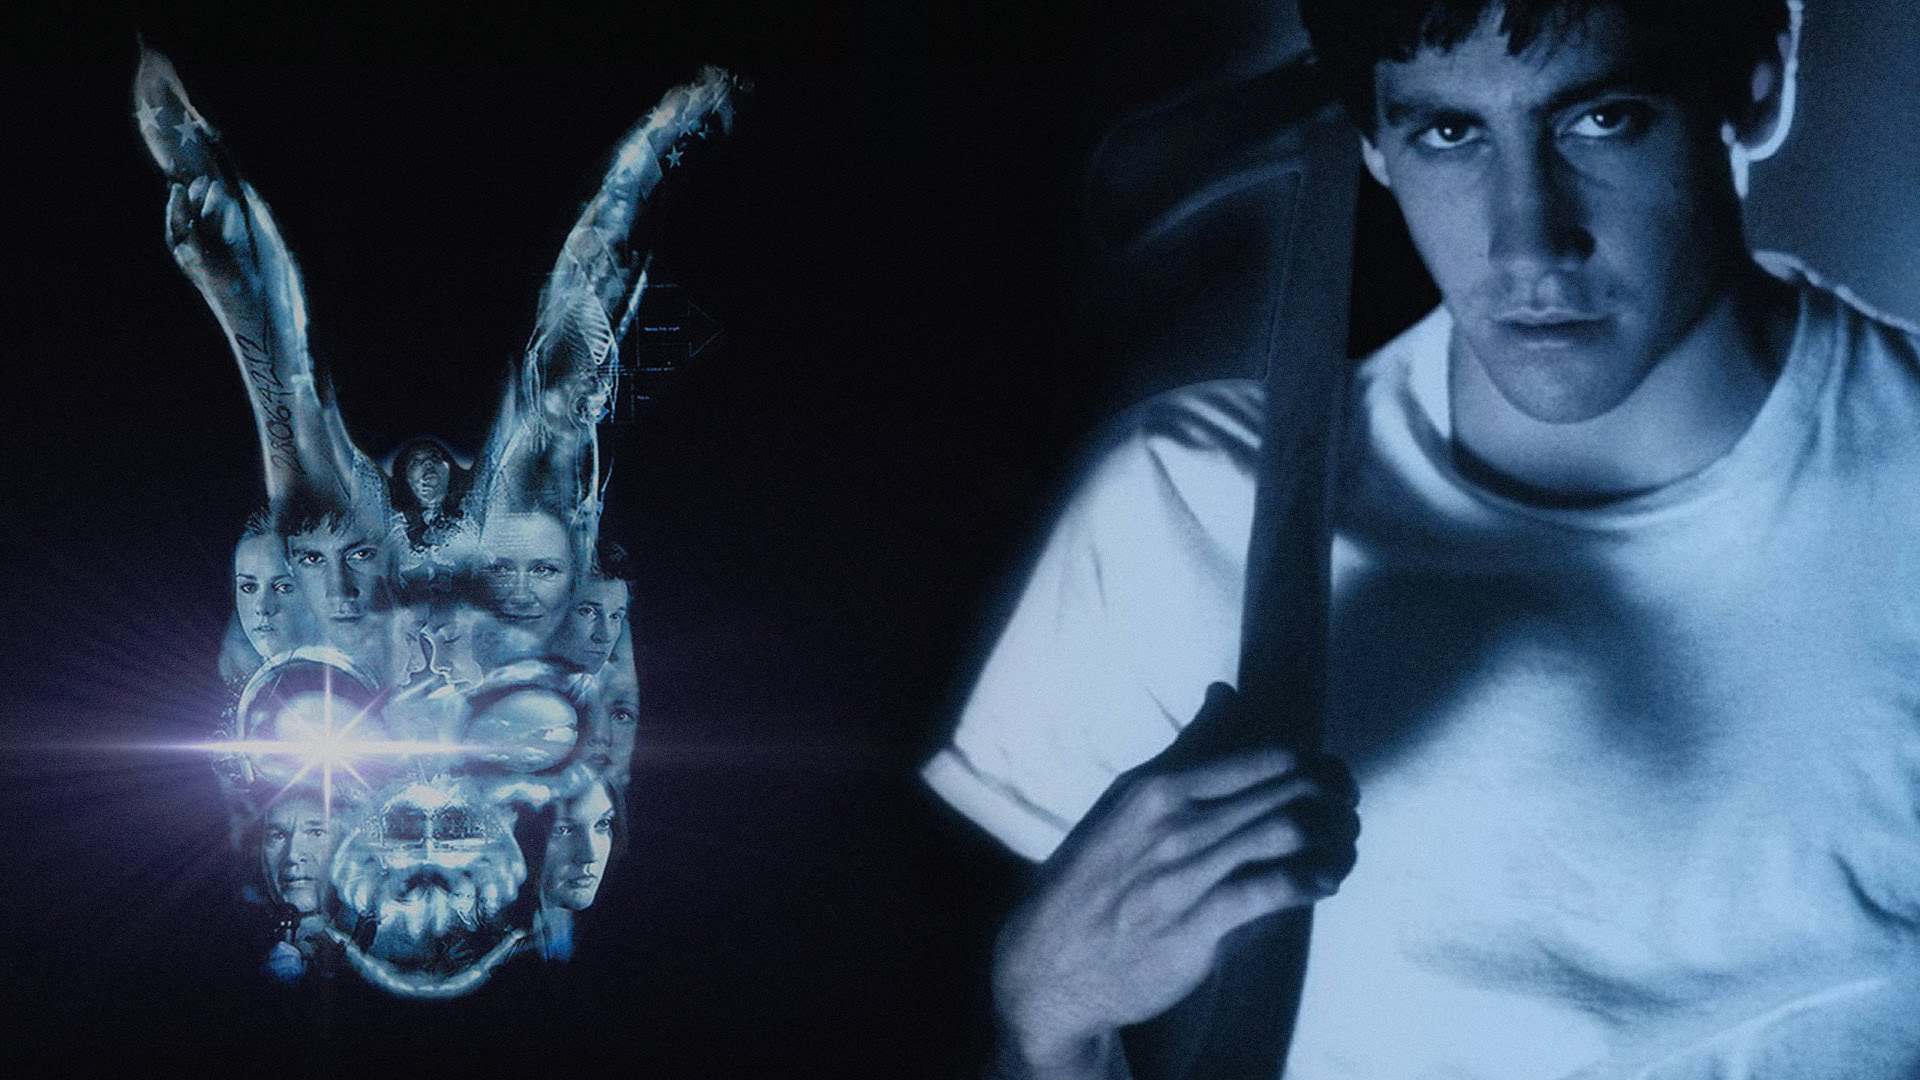 51 donnie darko 2001 wonders in the dark donnie darko 2001 wonders in the dark